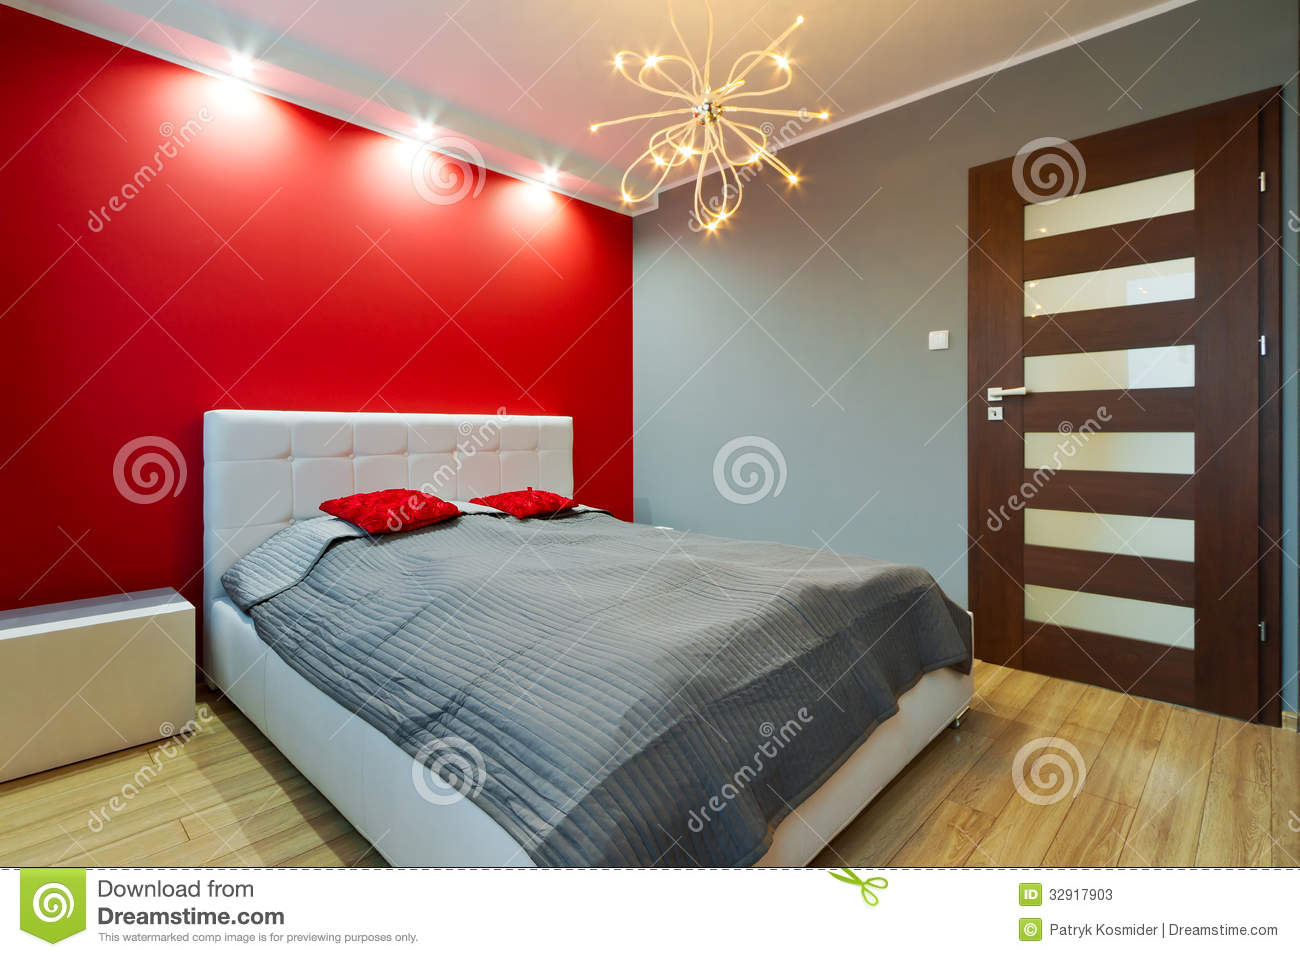 Modern master bedroom stock image image of colorful for Interior design for bedroom red